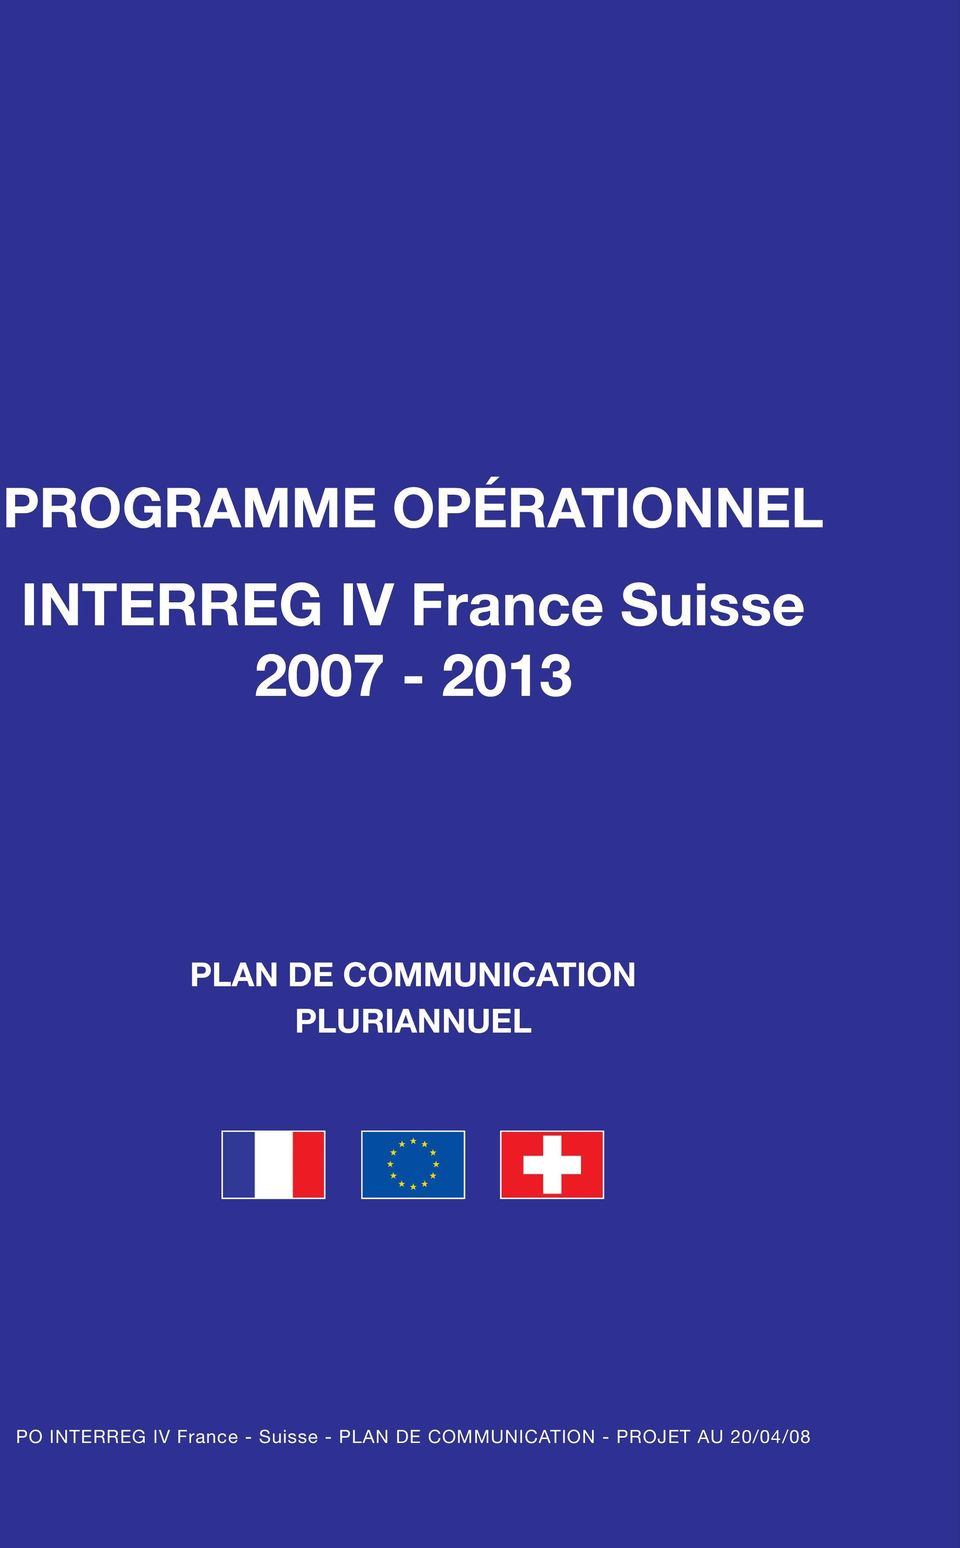 PLURIANNUEL PO INTERREG IV France -